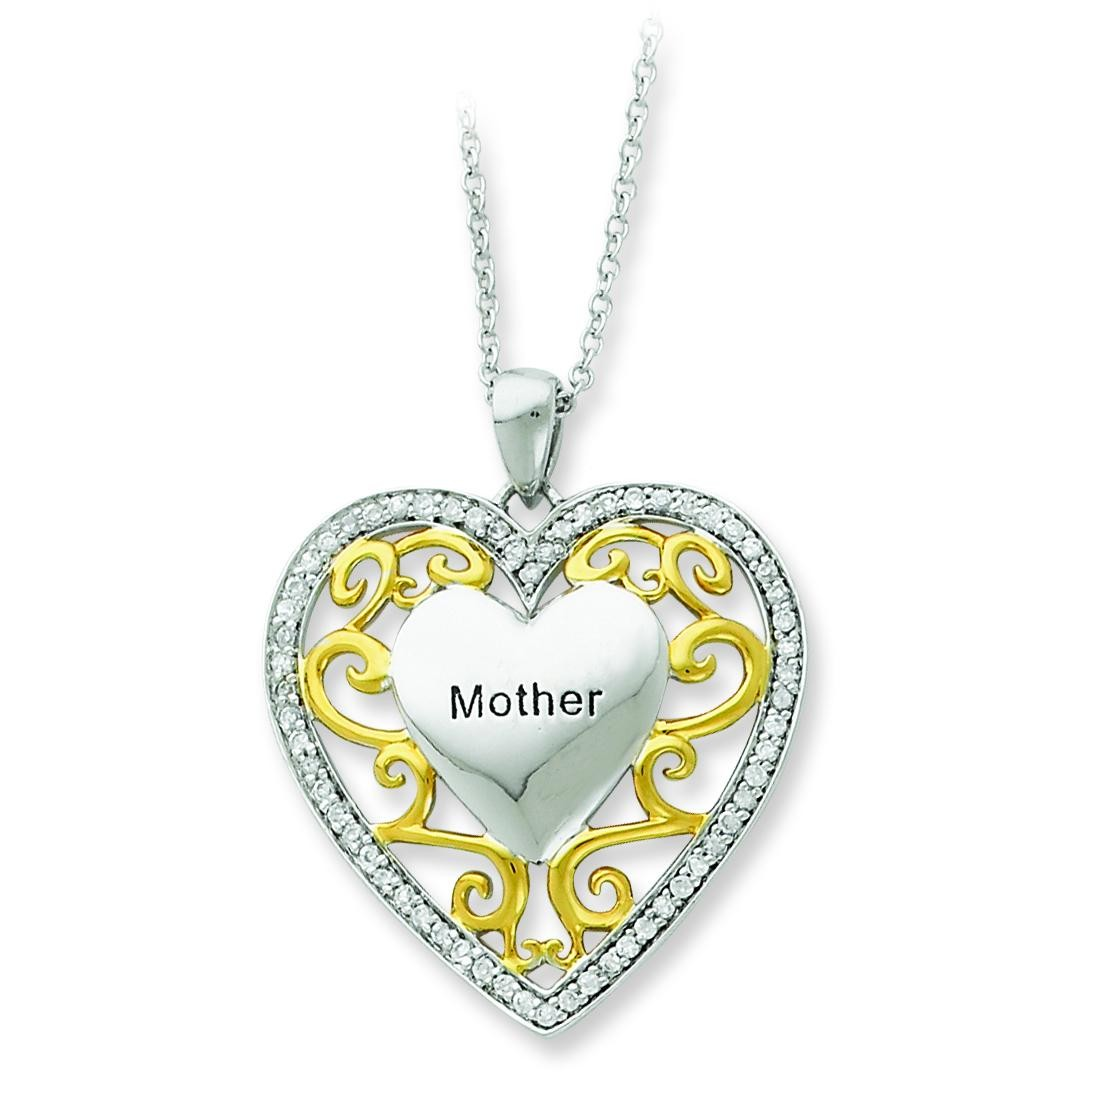 Mother In Heart Necklace in Sterling Silver